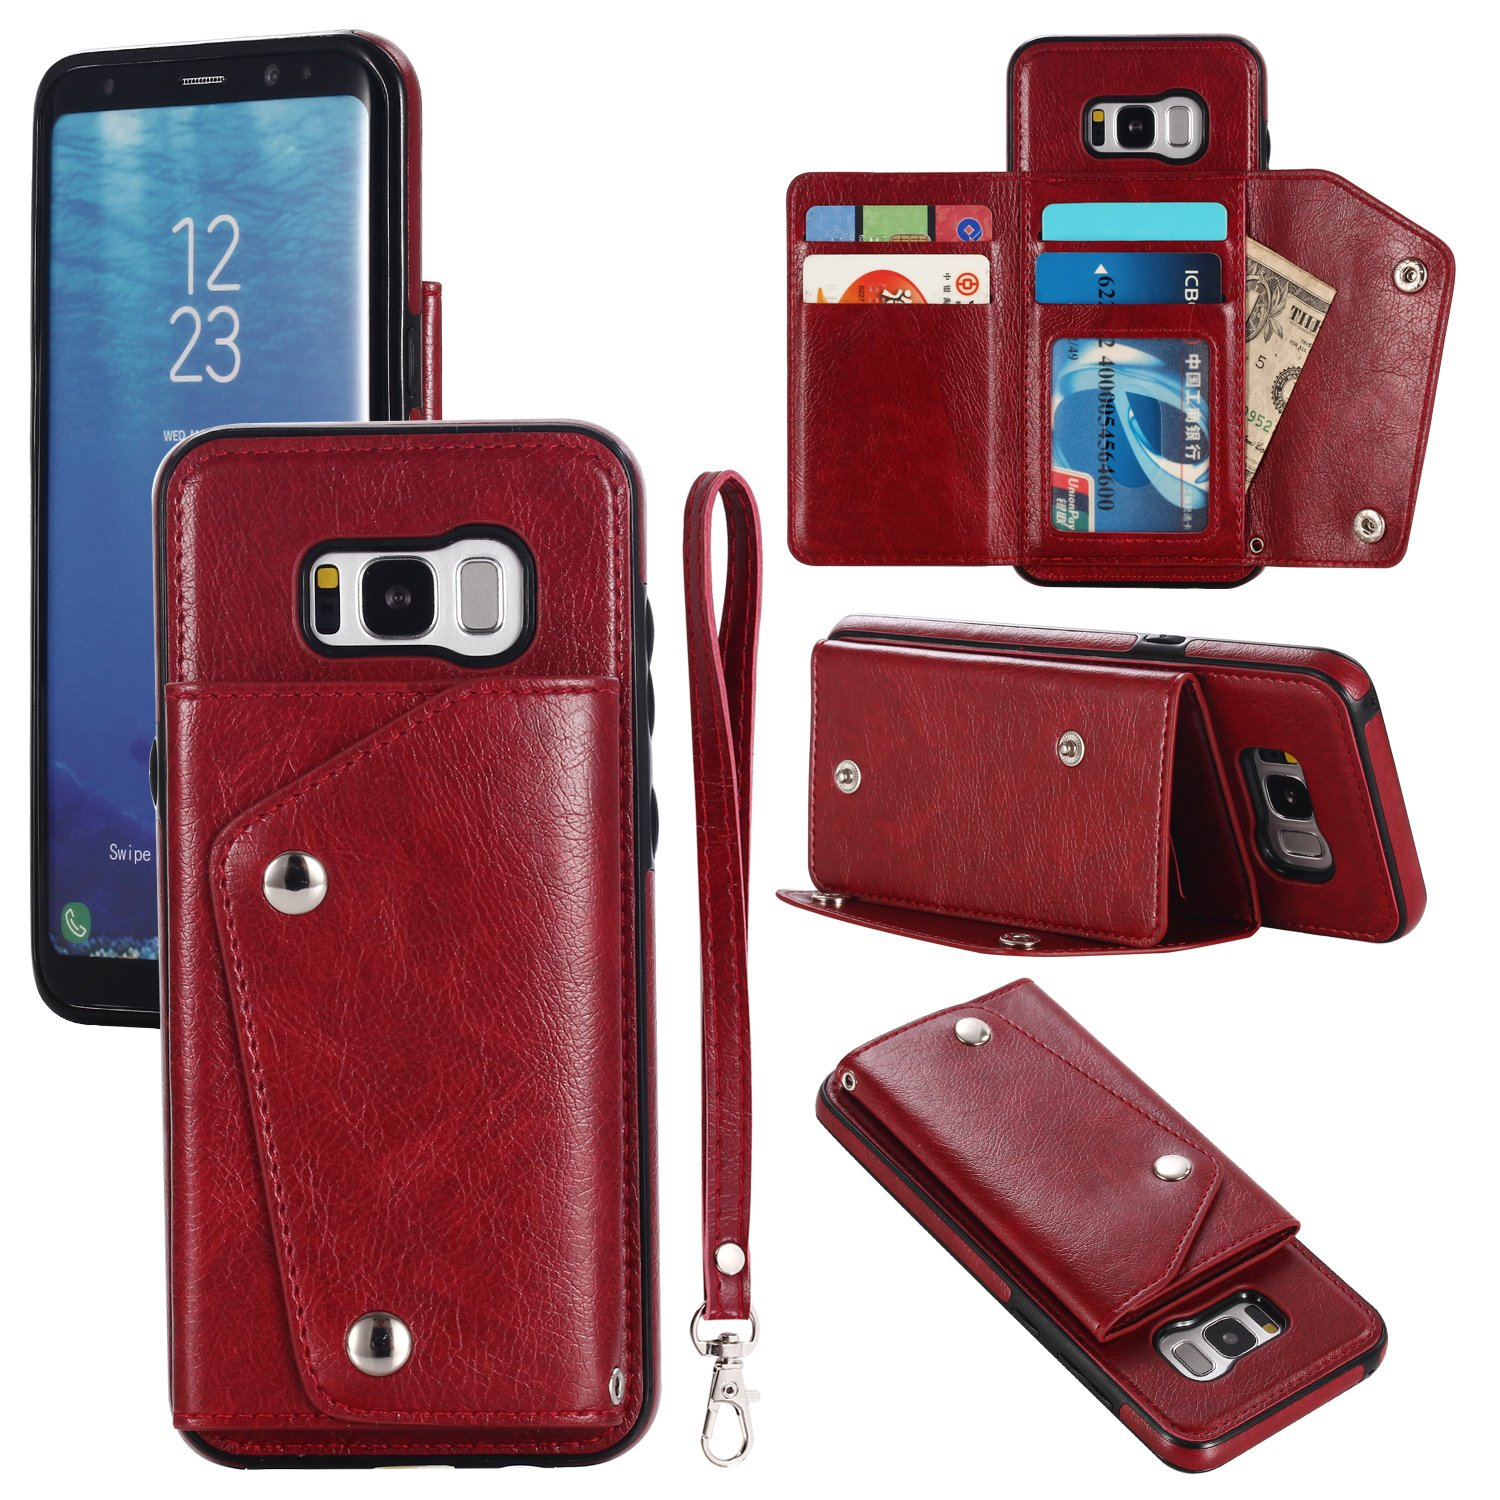 Gostyle Galaxy S8 Plus Wallet Case, Samsung Galaxy S8 Plus Case with Credit Card Slots, Fashion Multifunction Premium PU Leather Cover with Kickstand Cash Pocket Hand Strap Shockproof Cover, Red